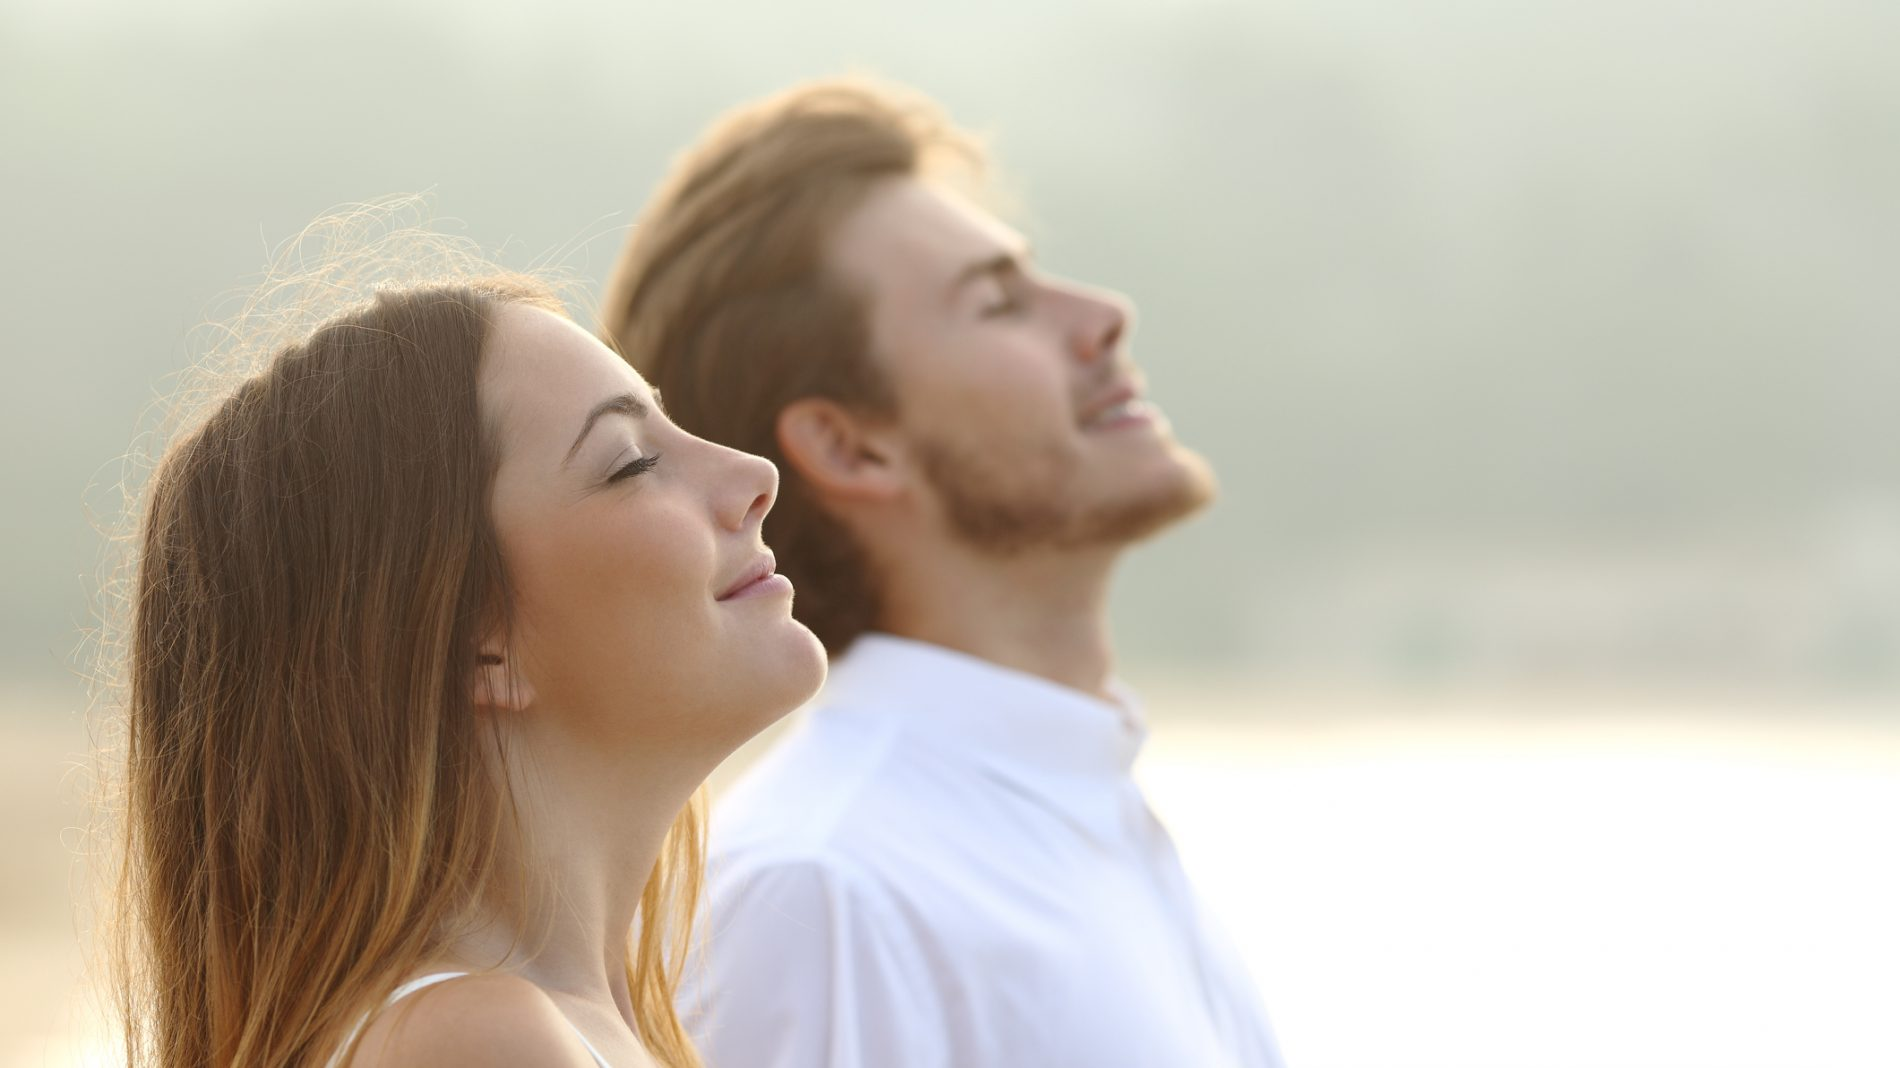 Man and woman breathing in